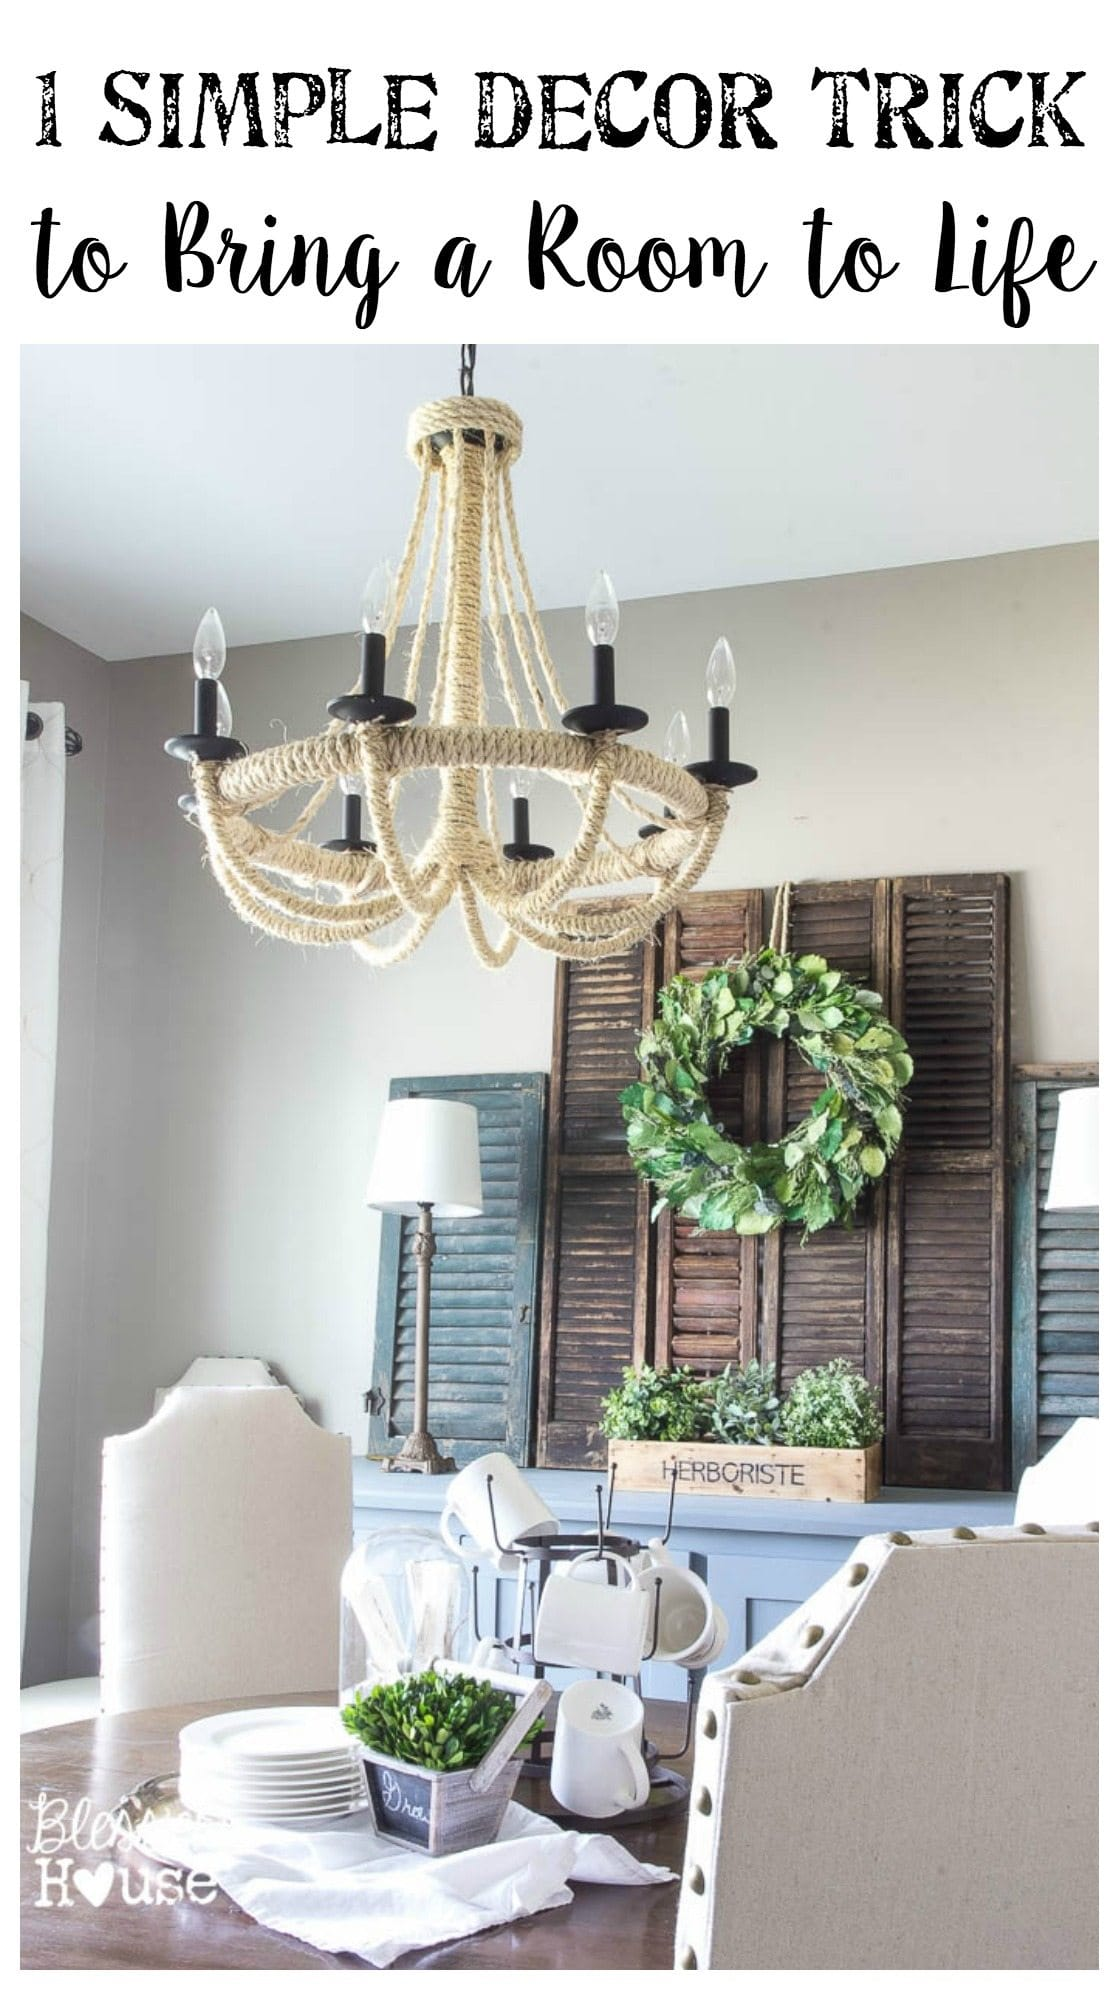 One Simple Decor Trick to Bring a Room to Life | Bless'er House -